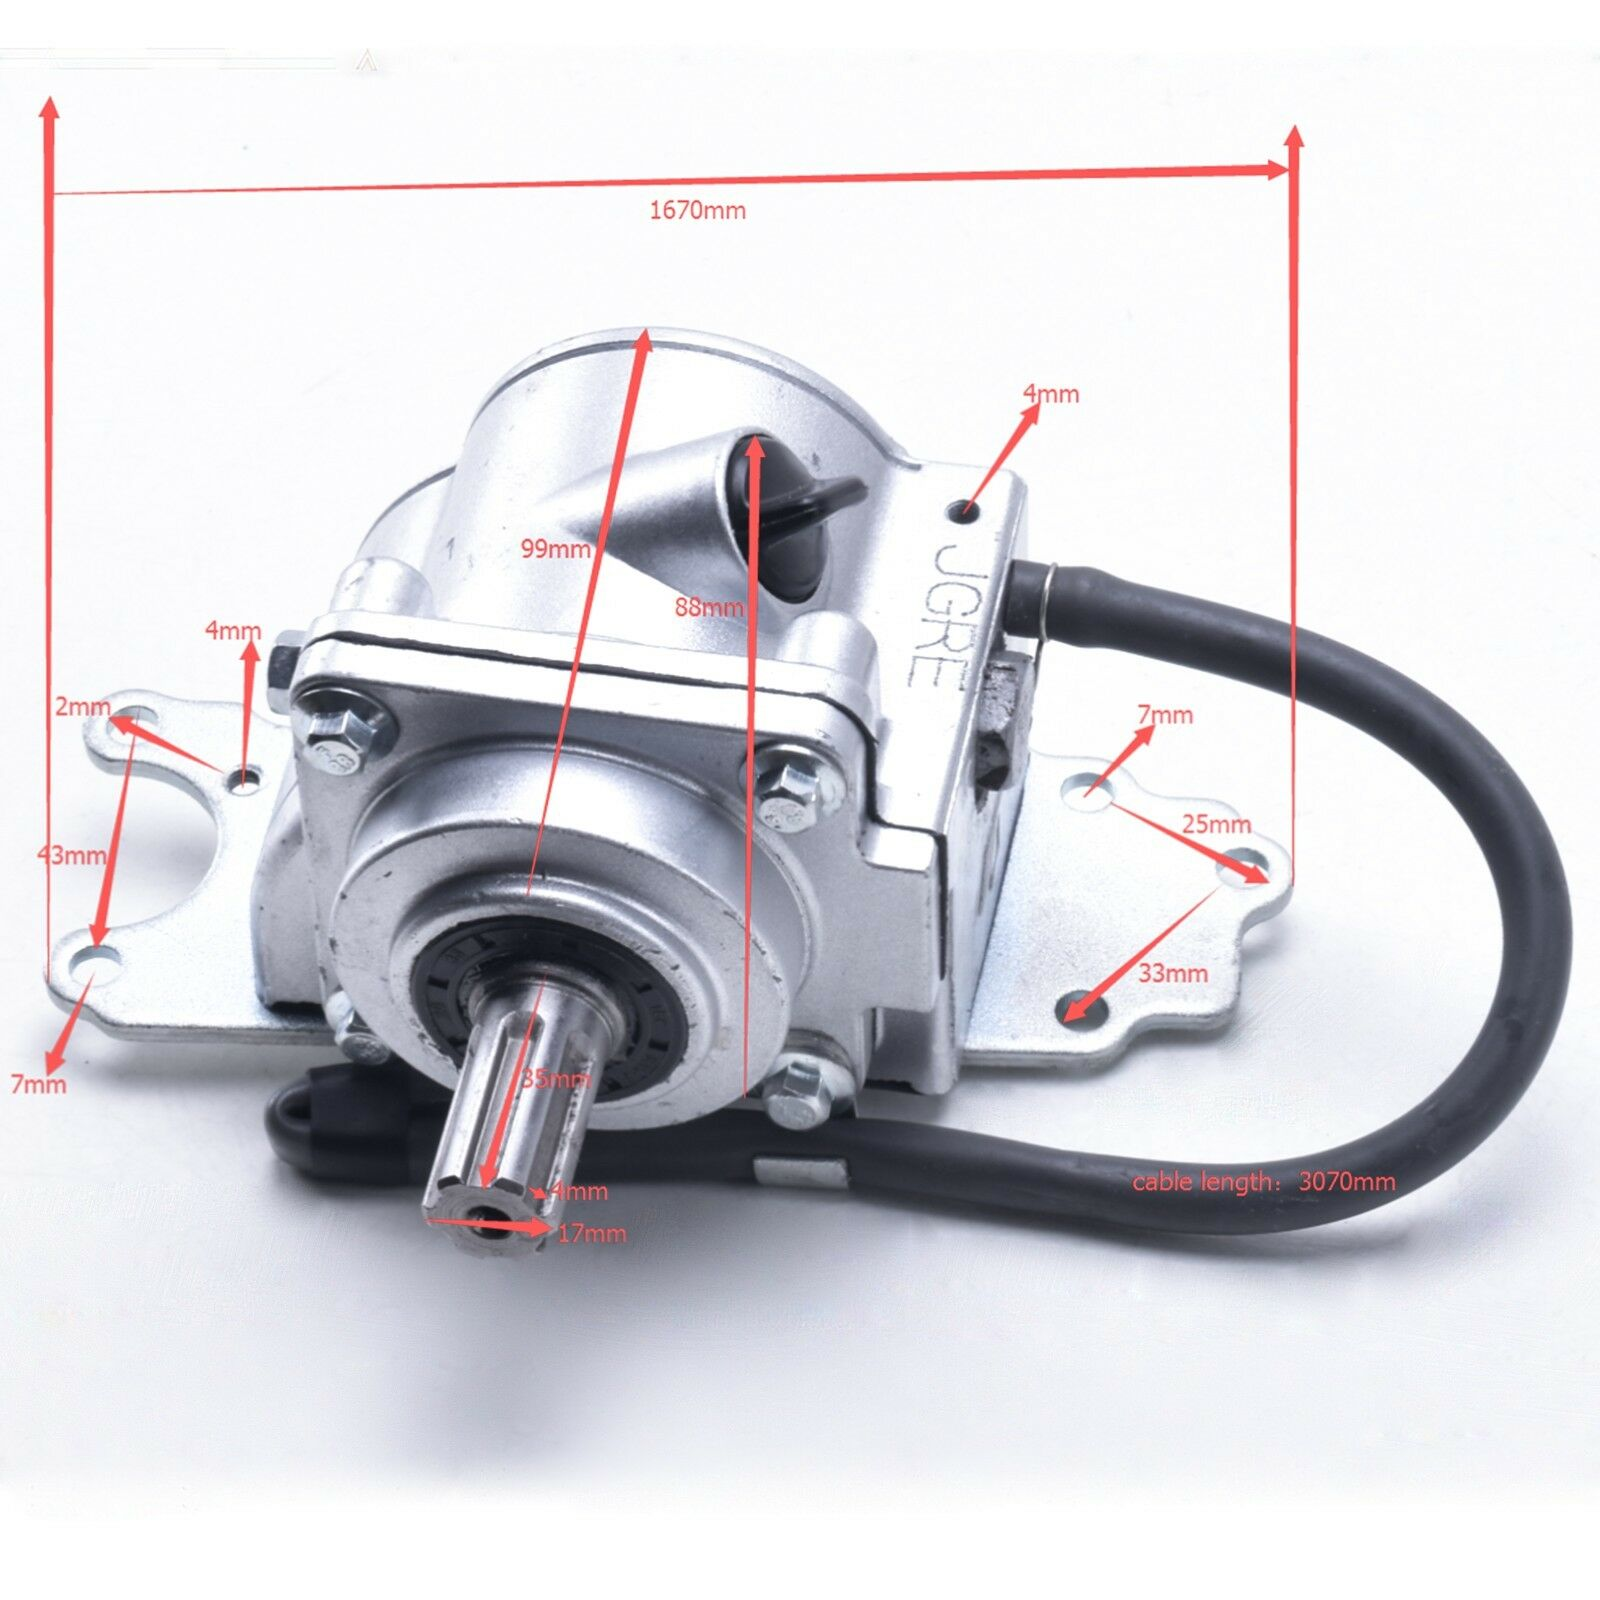 Atv Buggy Reverse Gear Box Assy Drive By Shaft Drive Reverse Gear Transfer Case For 125cc 150cc 200cc 250cc Back To Search Resultsautomobiles & Motorcycles